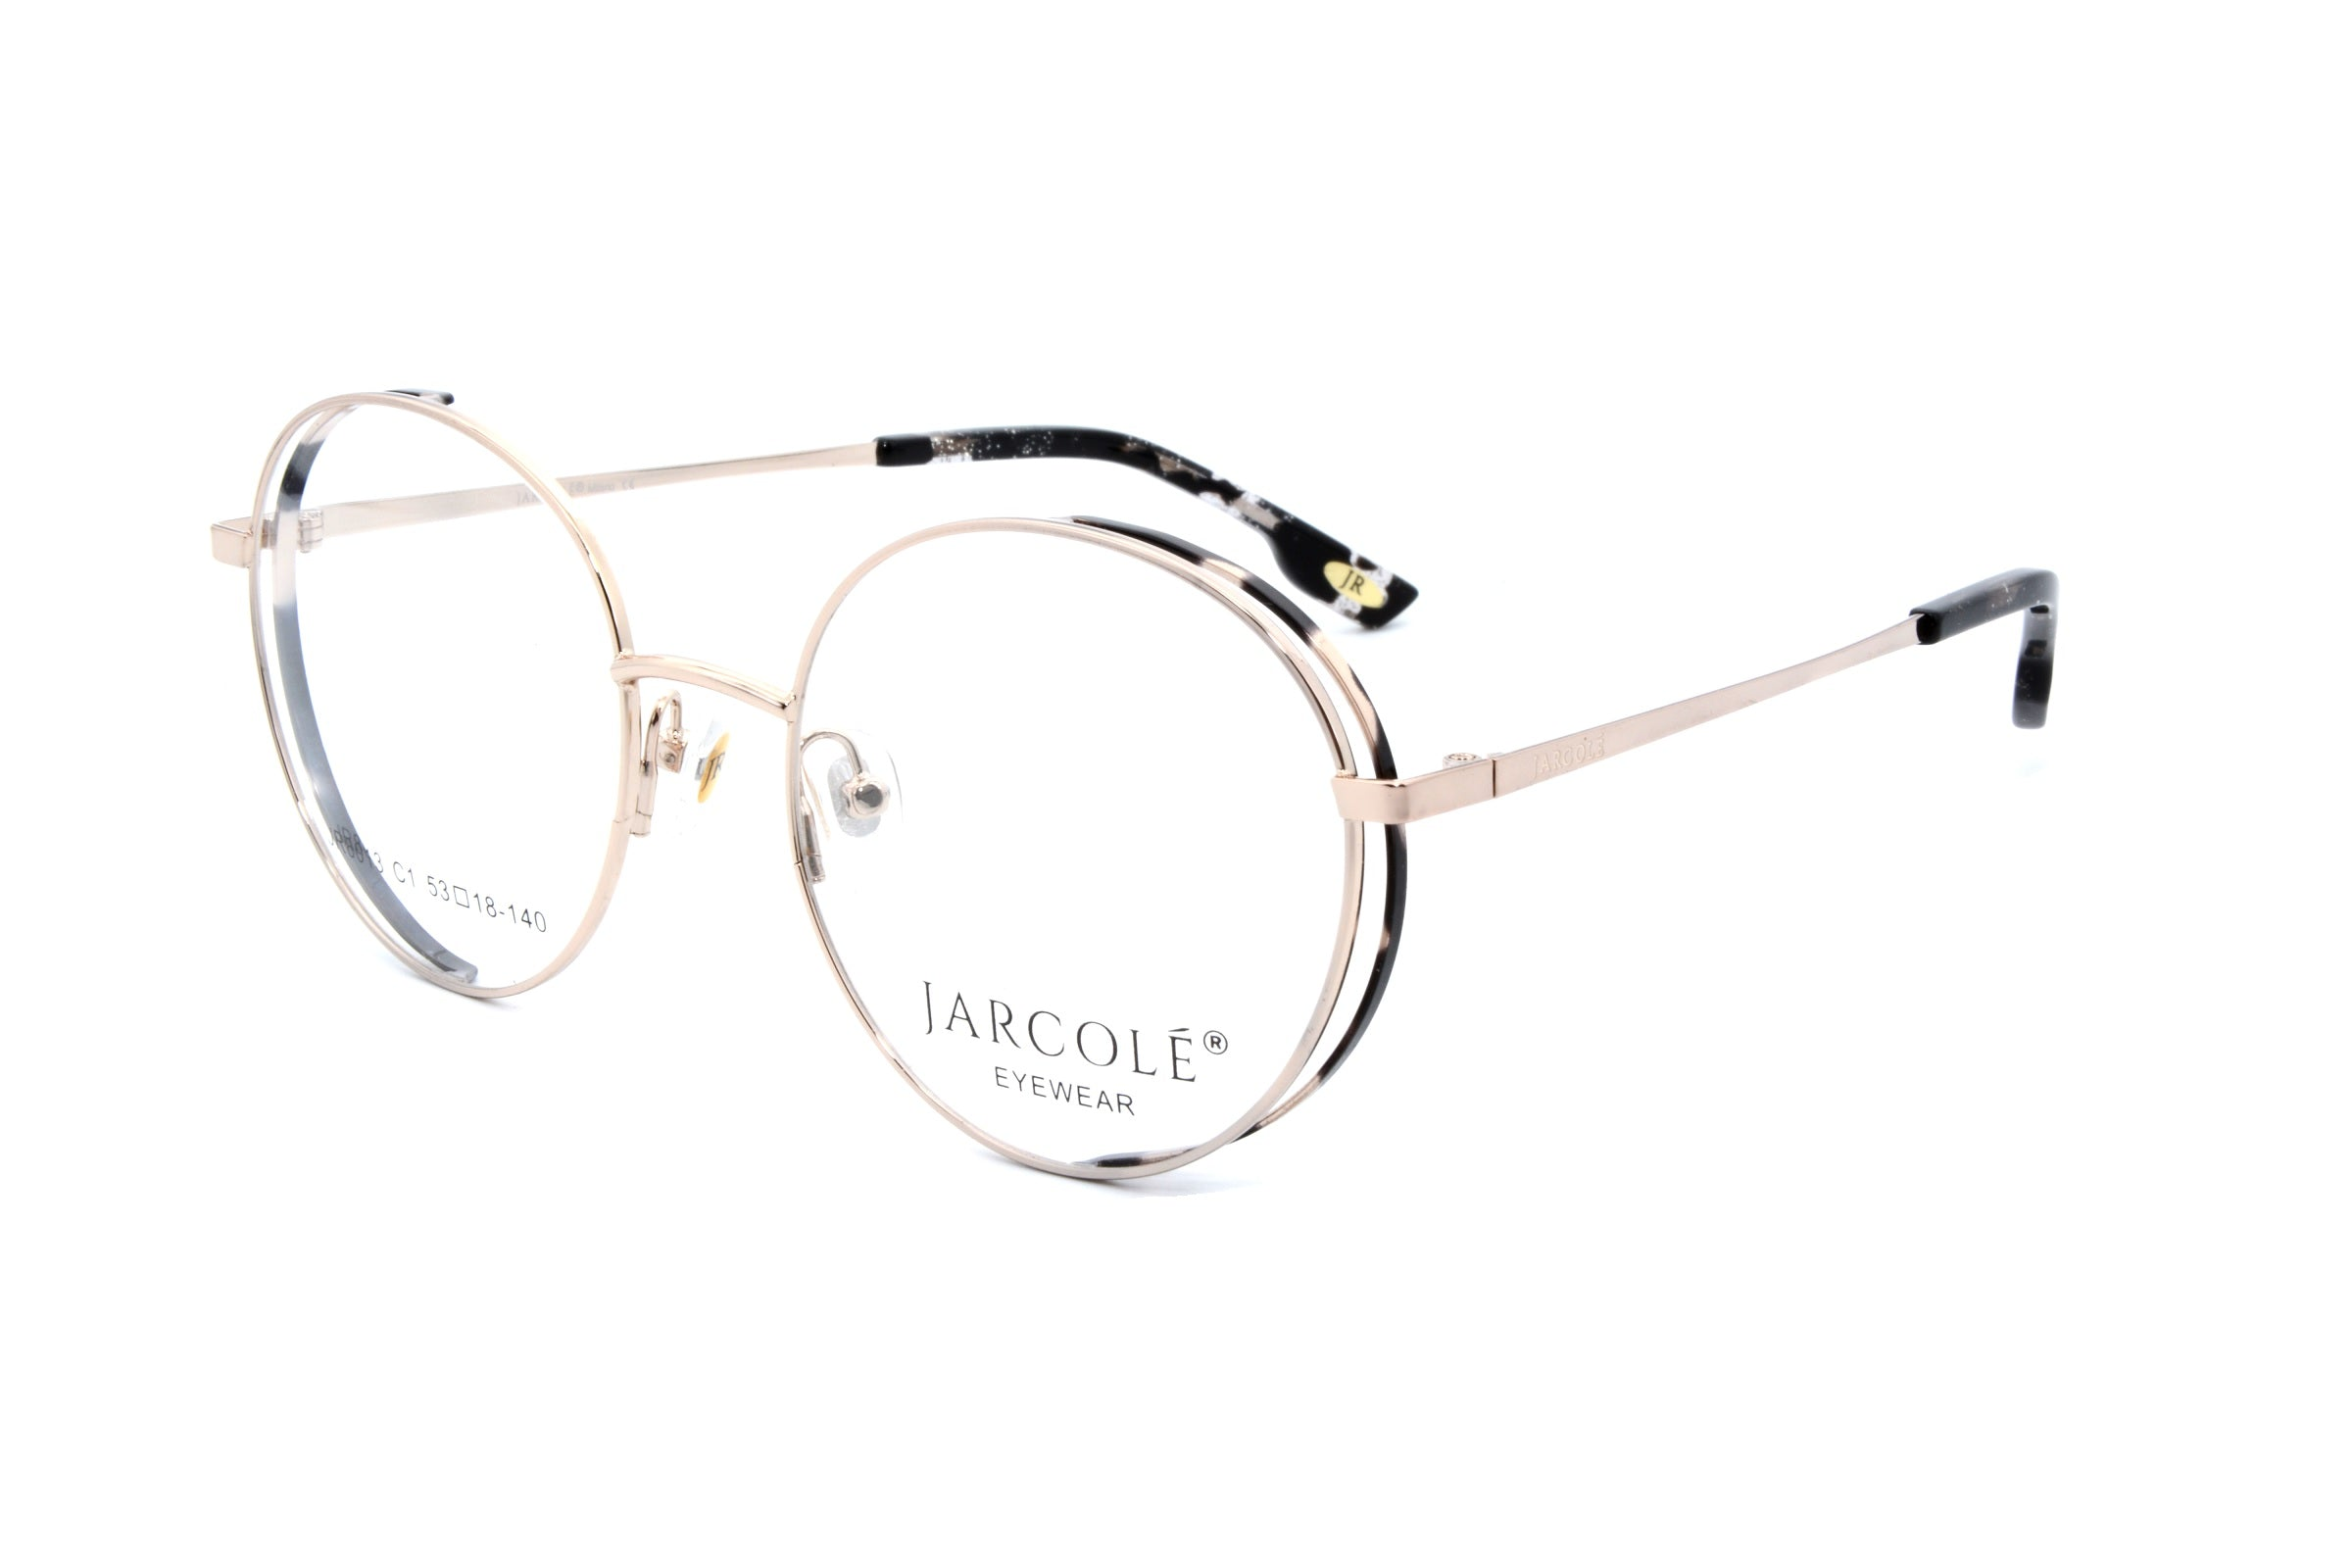 Jarcole eyewear 8013, C1 - Optics Trading